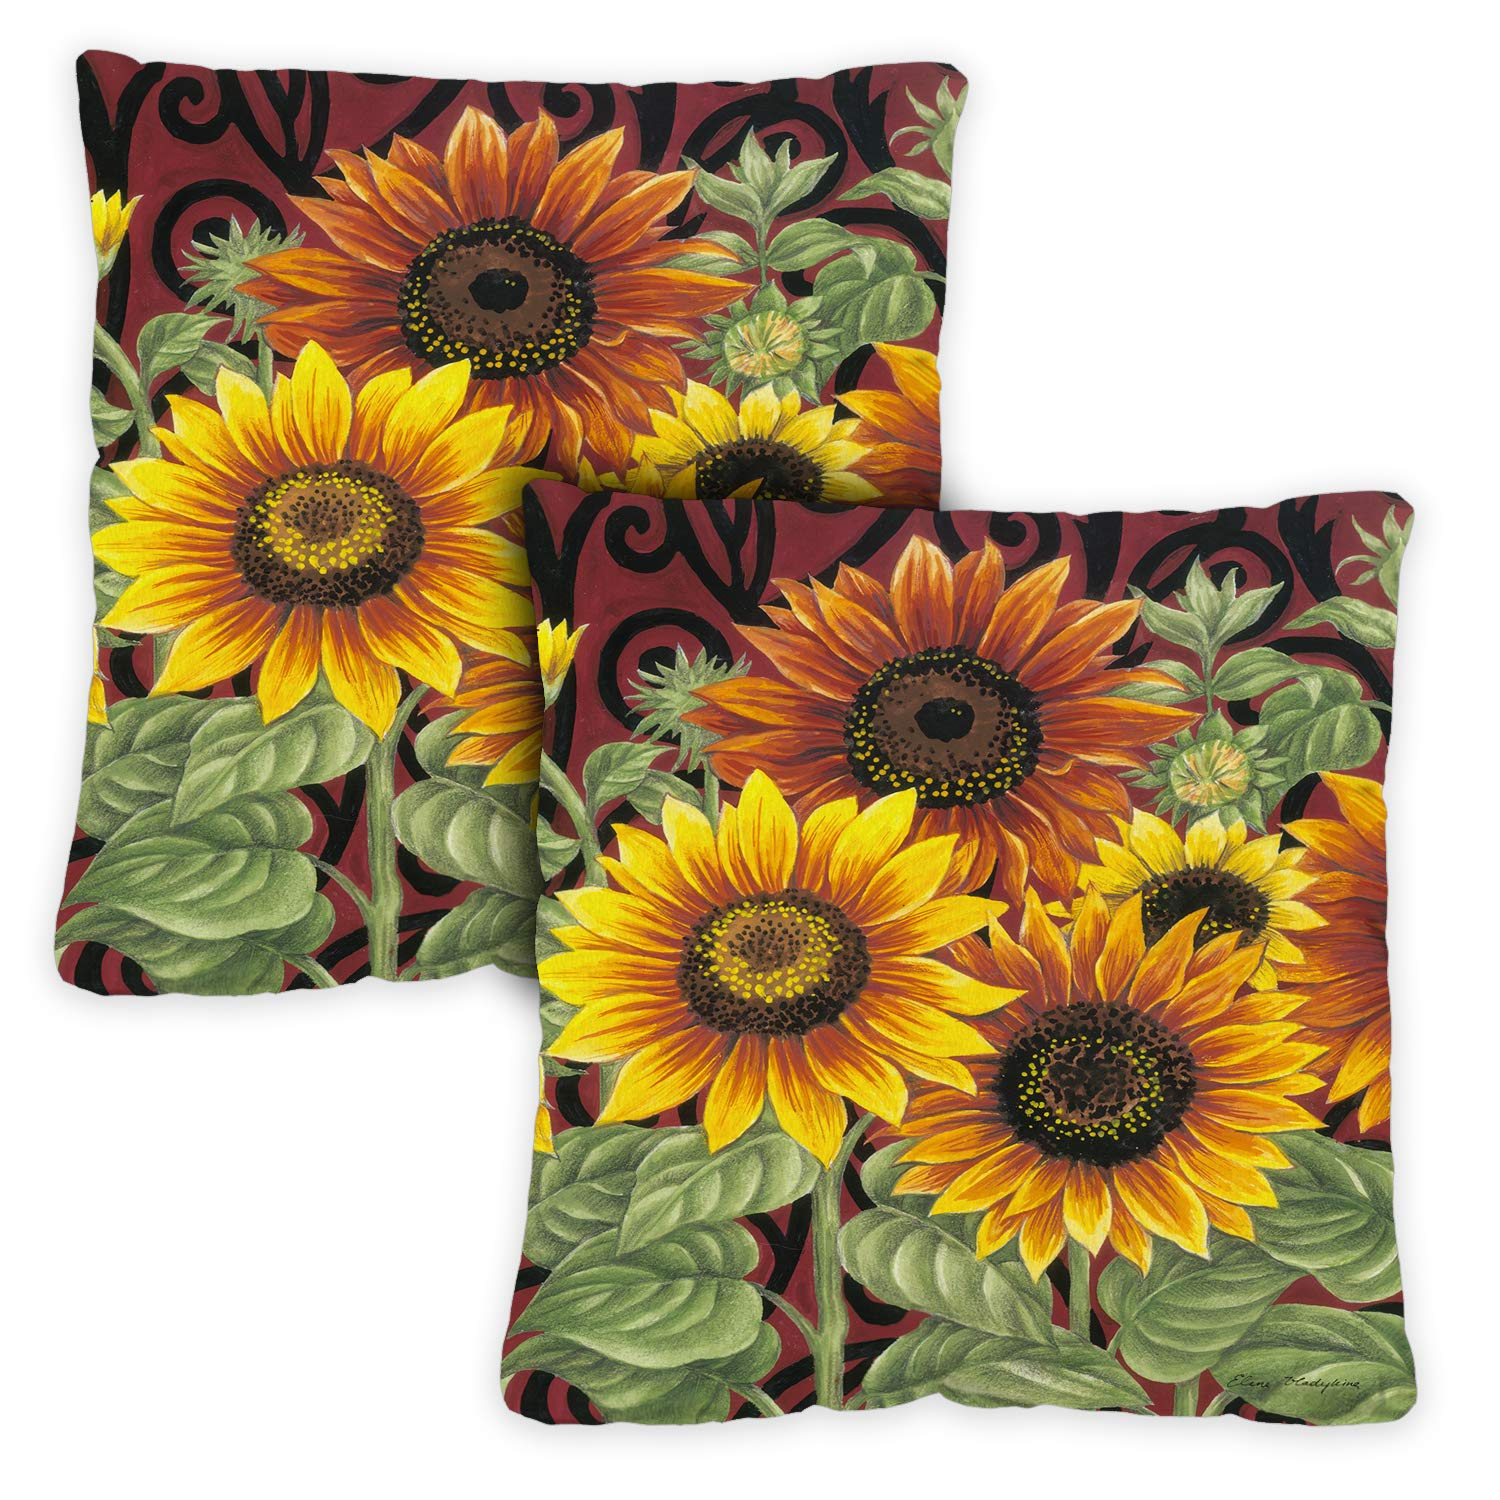 Toland Home Garden 721215 Sunflower Medley 18 x 18 Inch Indoor Outdoor, Pillow, Insert 2-Pack